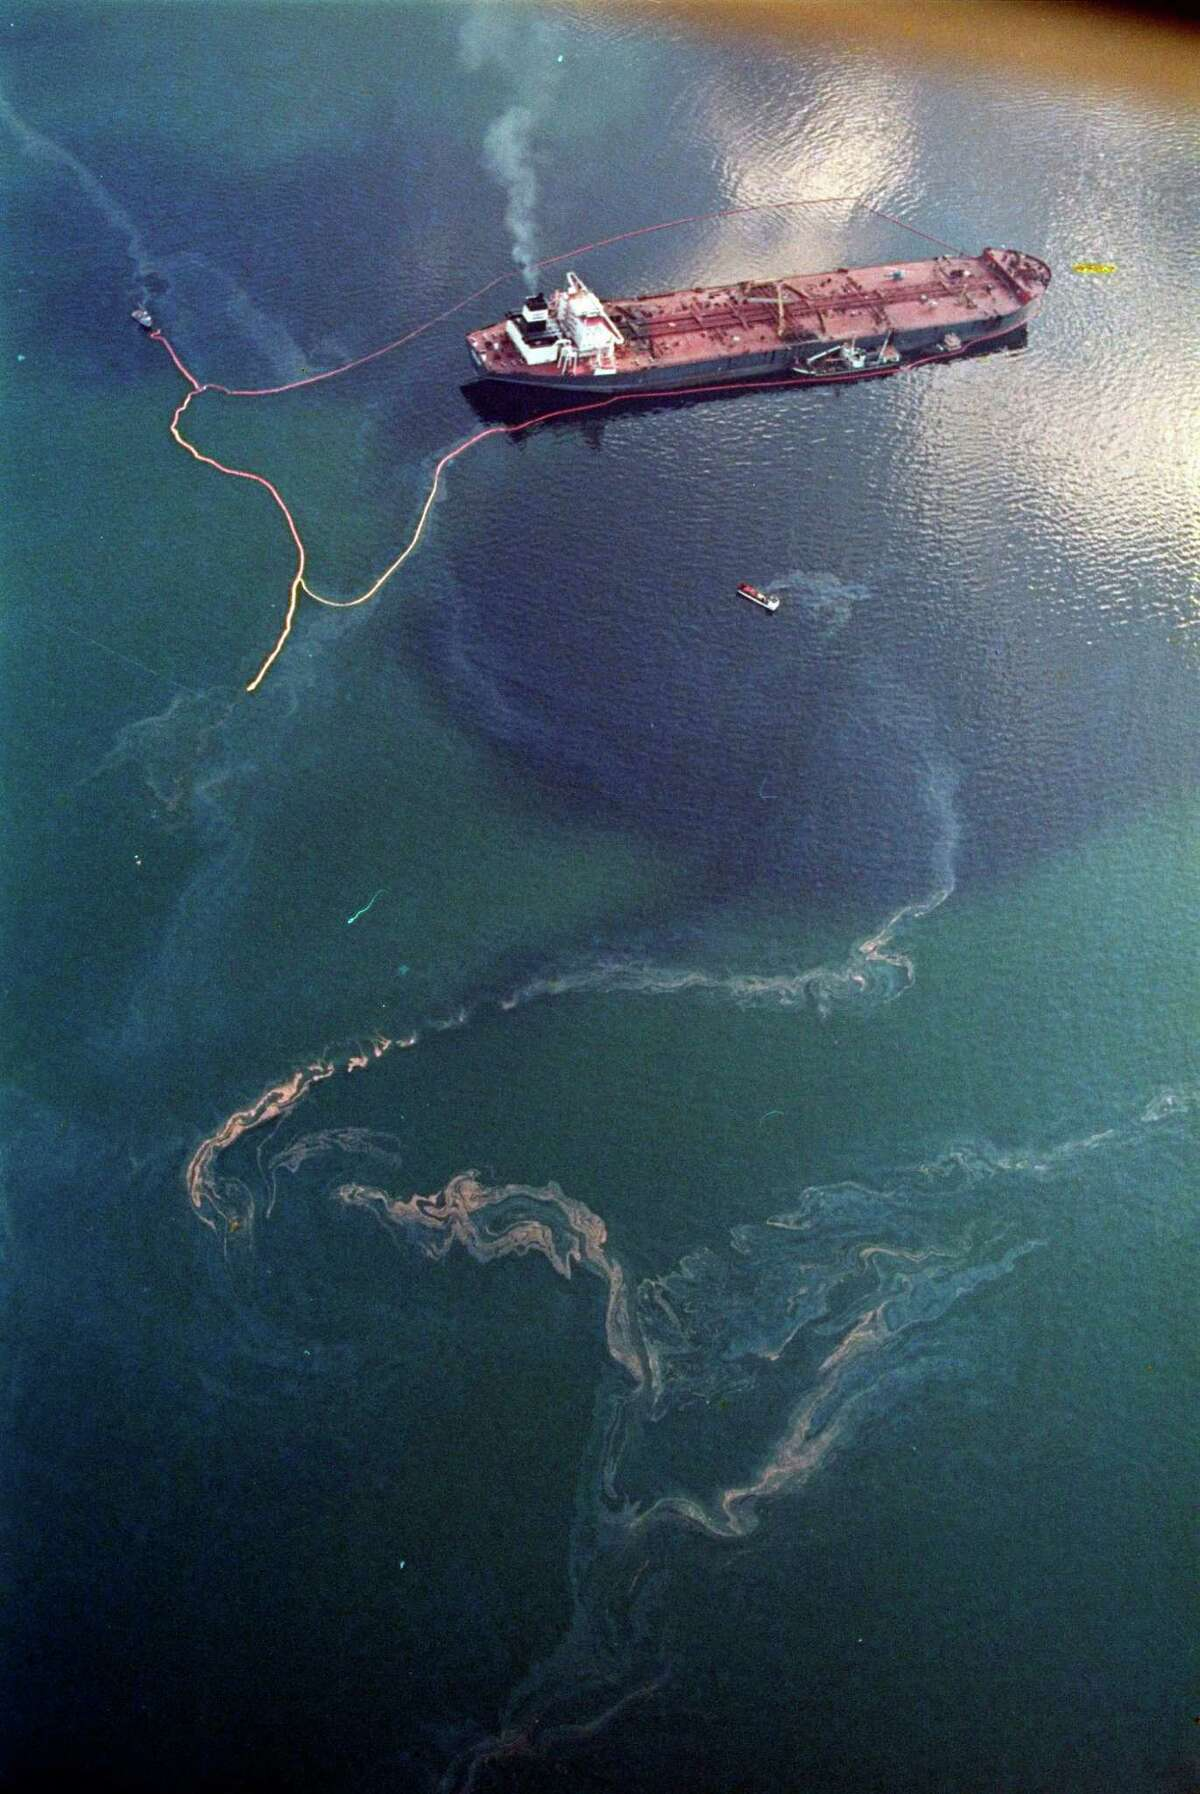 Crude oil from the tanker Exxon Valdez, top, swirls on the surface of Alaska's Prince William Sound near Naked Island. The 987-foot tanker, carrying 53 million gallons of crude, struck Bligh Reef at 12:04 a.m. on March 24, 1989, and within hours unleashed an estimated 10.8 million gallons of thick, toxic crude oil into the water. Storms and currents then smeared it over 1,300 miles of shoreline. Twenty five years later, the region, its people and its wildfire are still recovering.